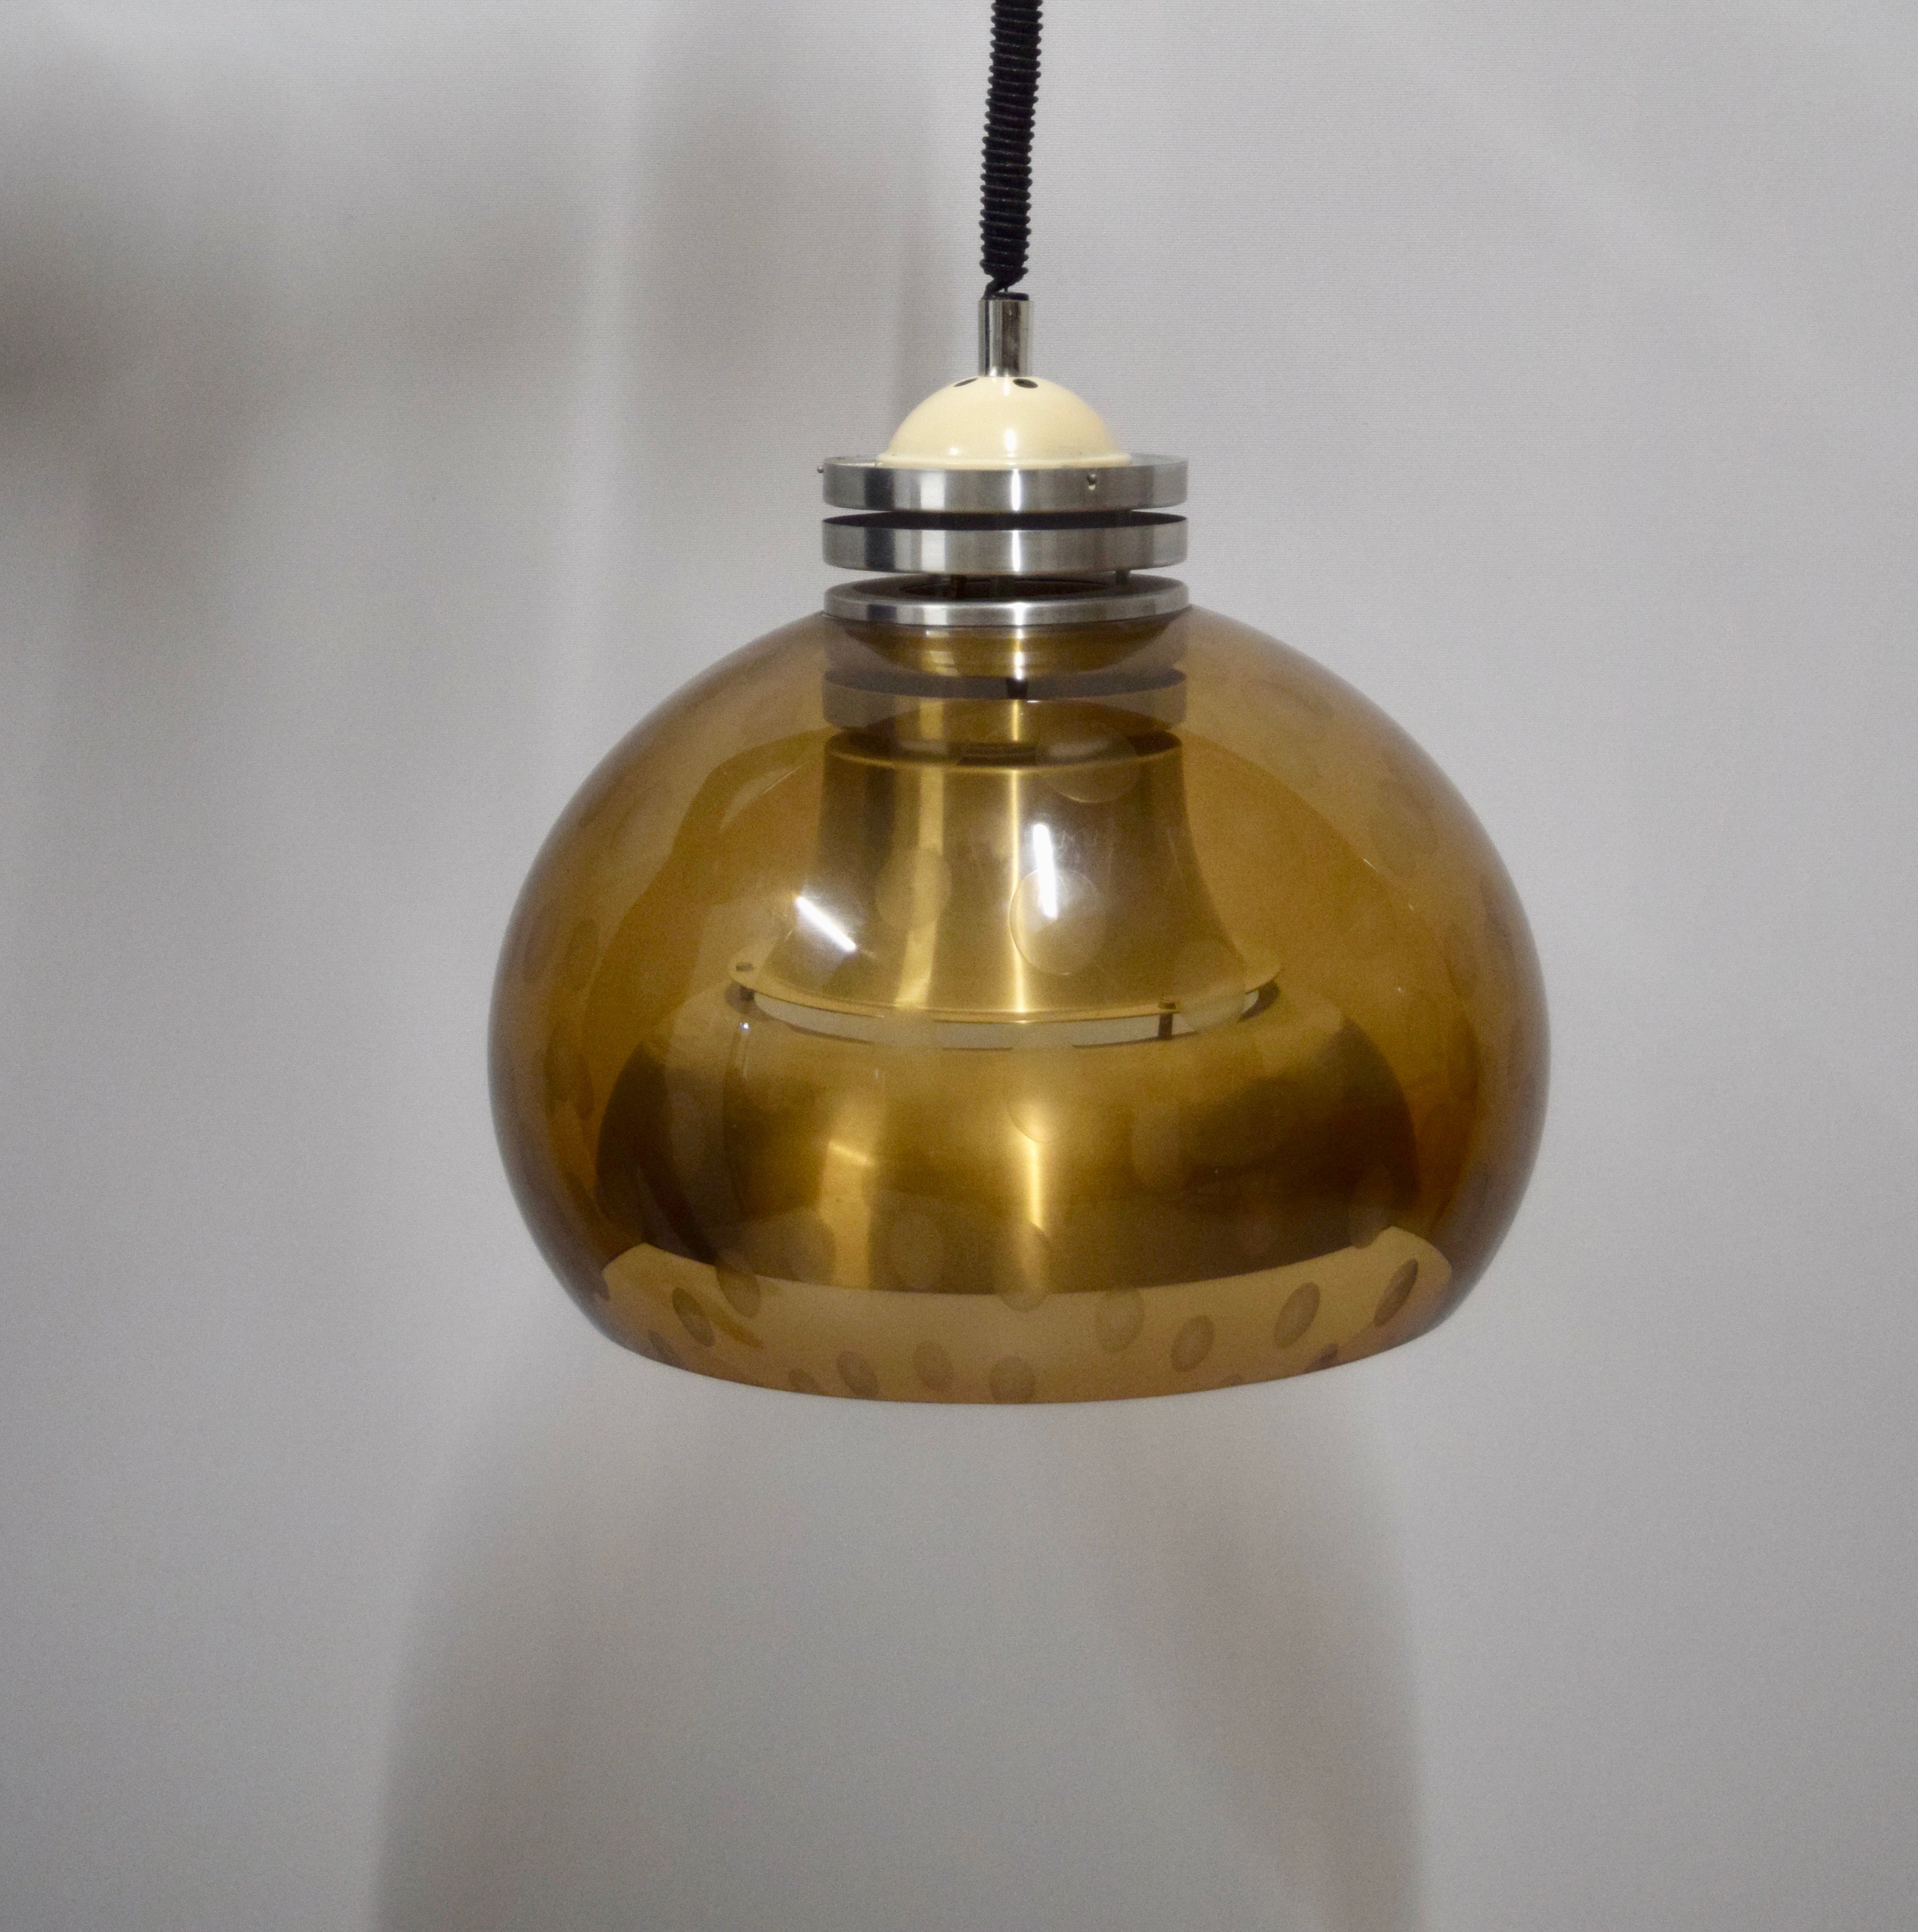 Vintage Lakro Ceiling Lamp,  Aluminium and Plastic, The Netherlands 1960's